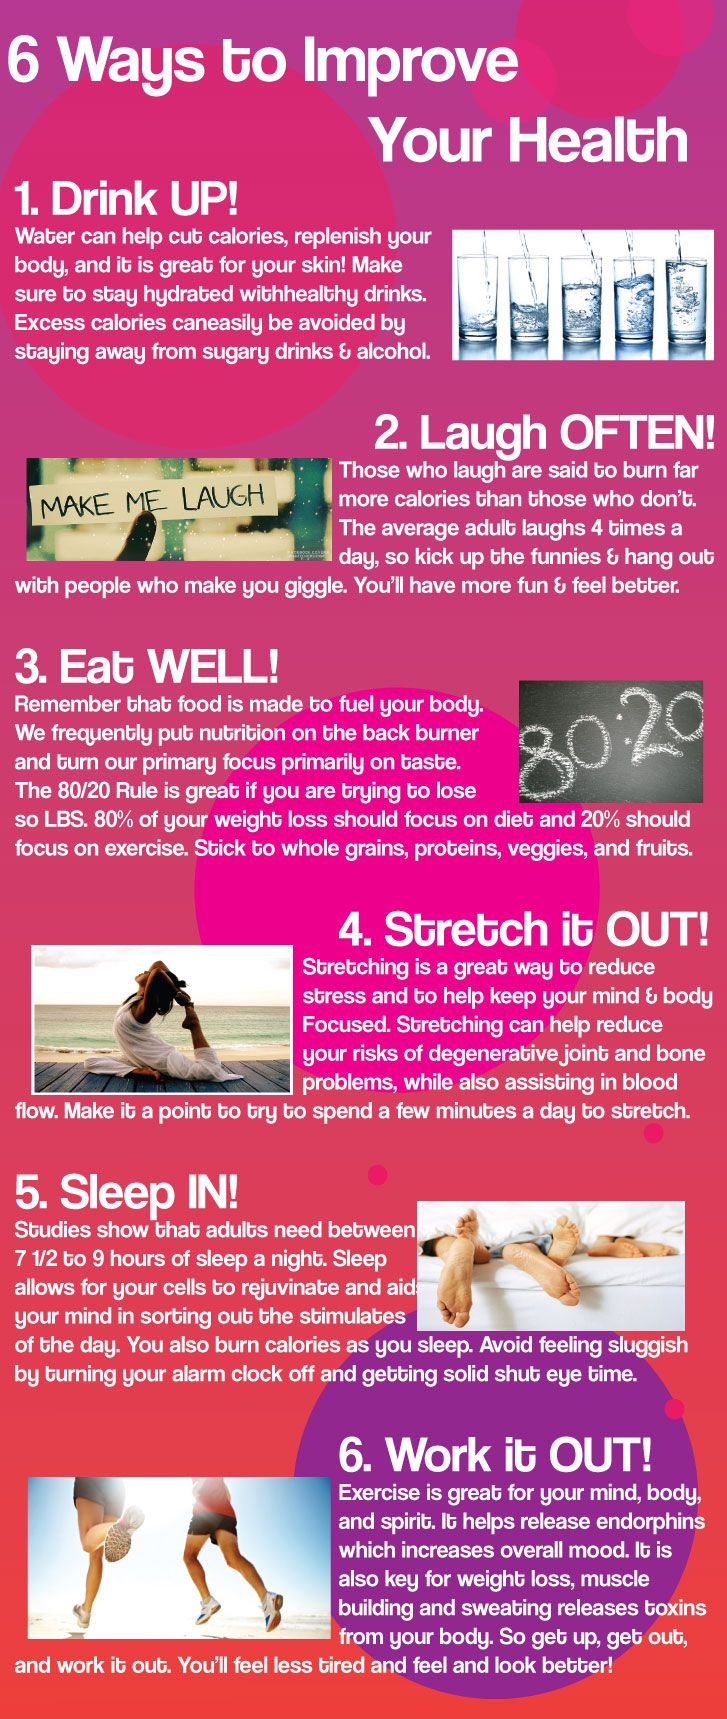 6 Ways to improve your health.